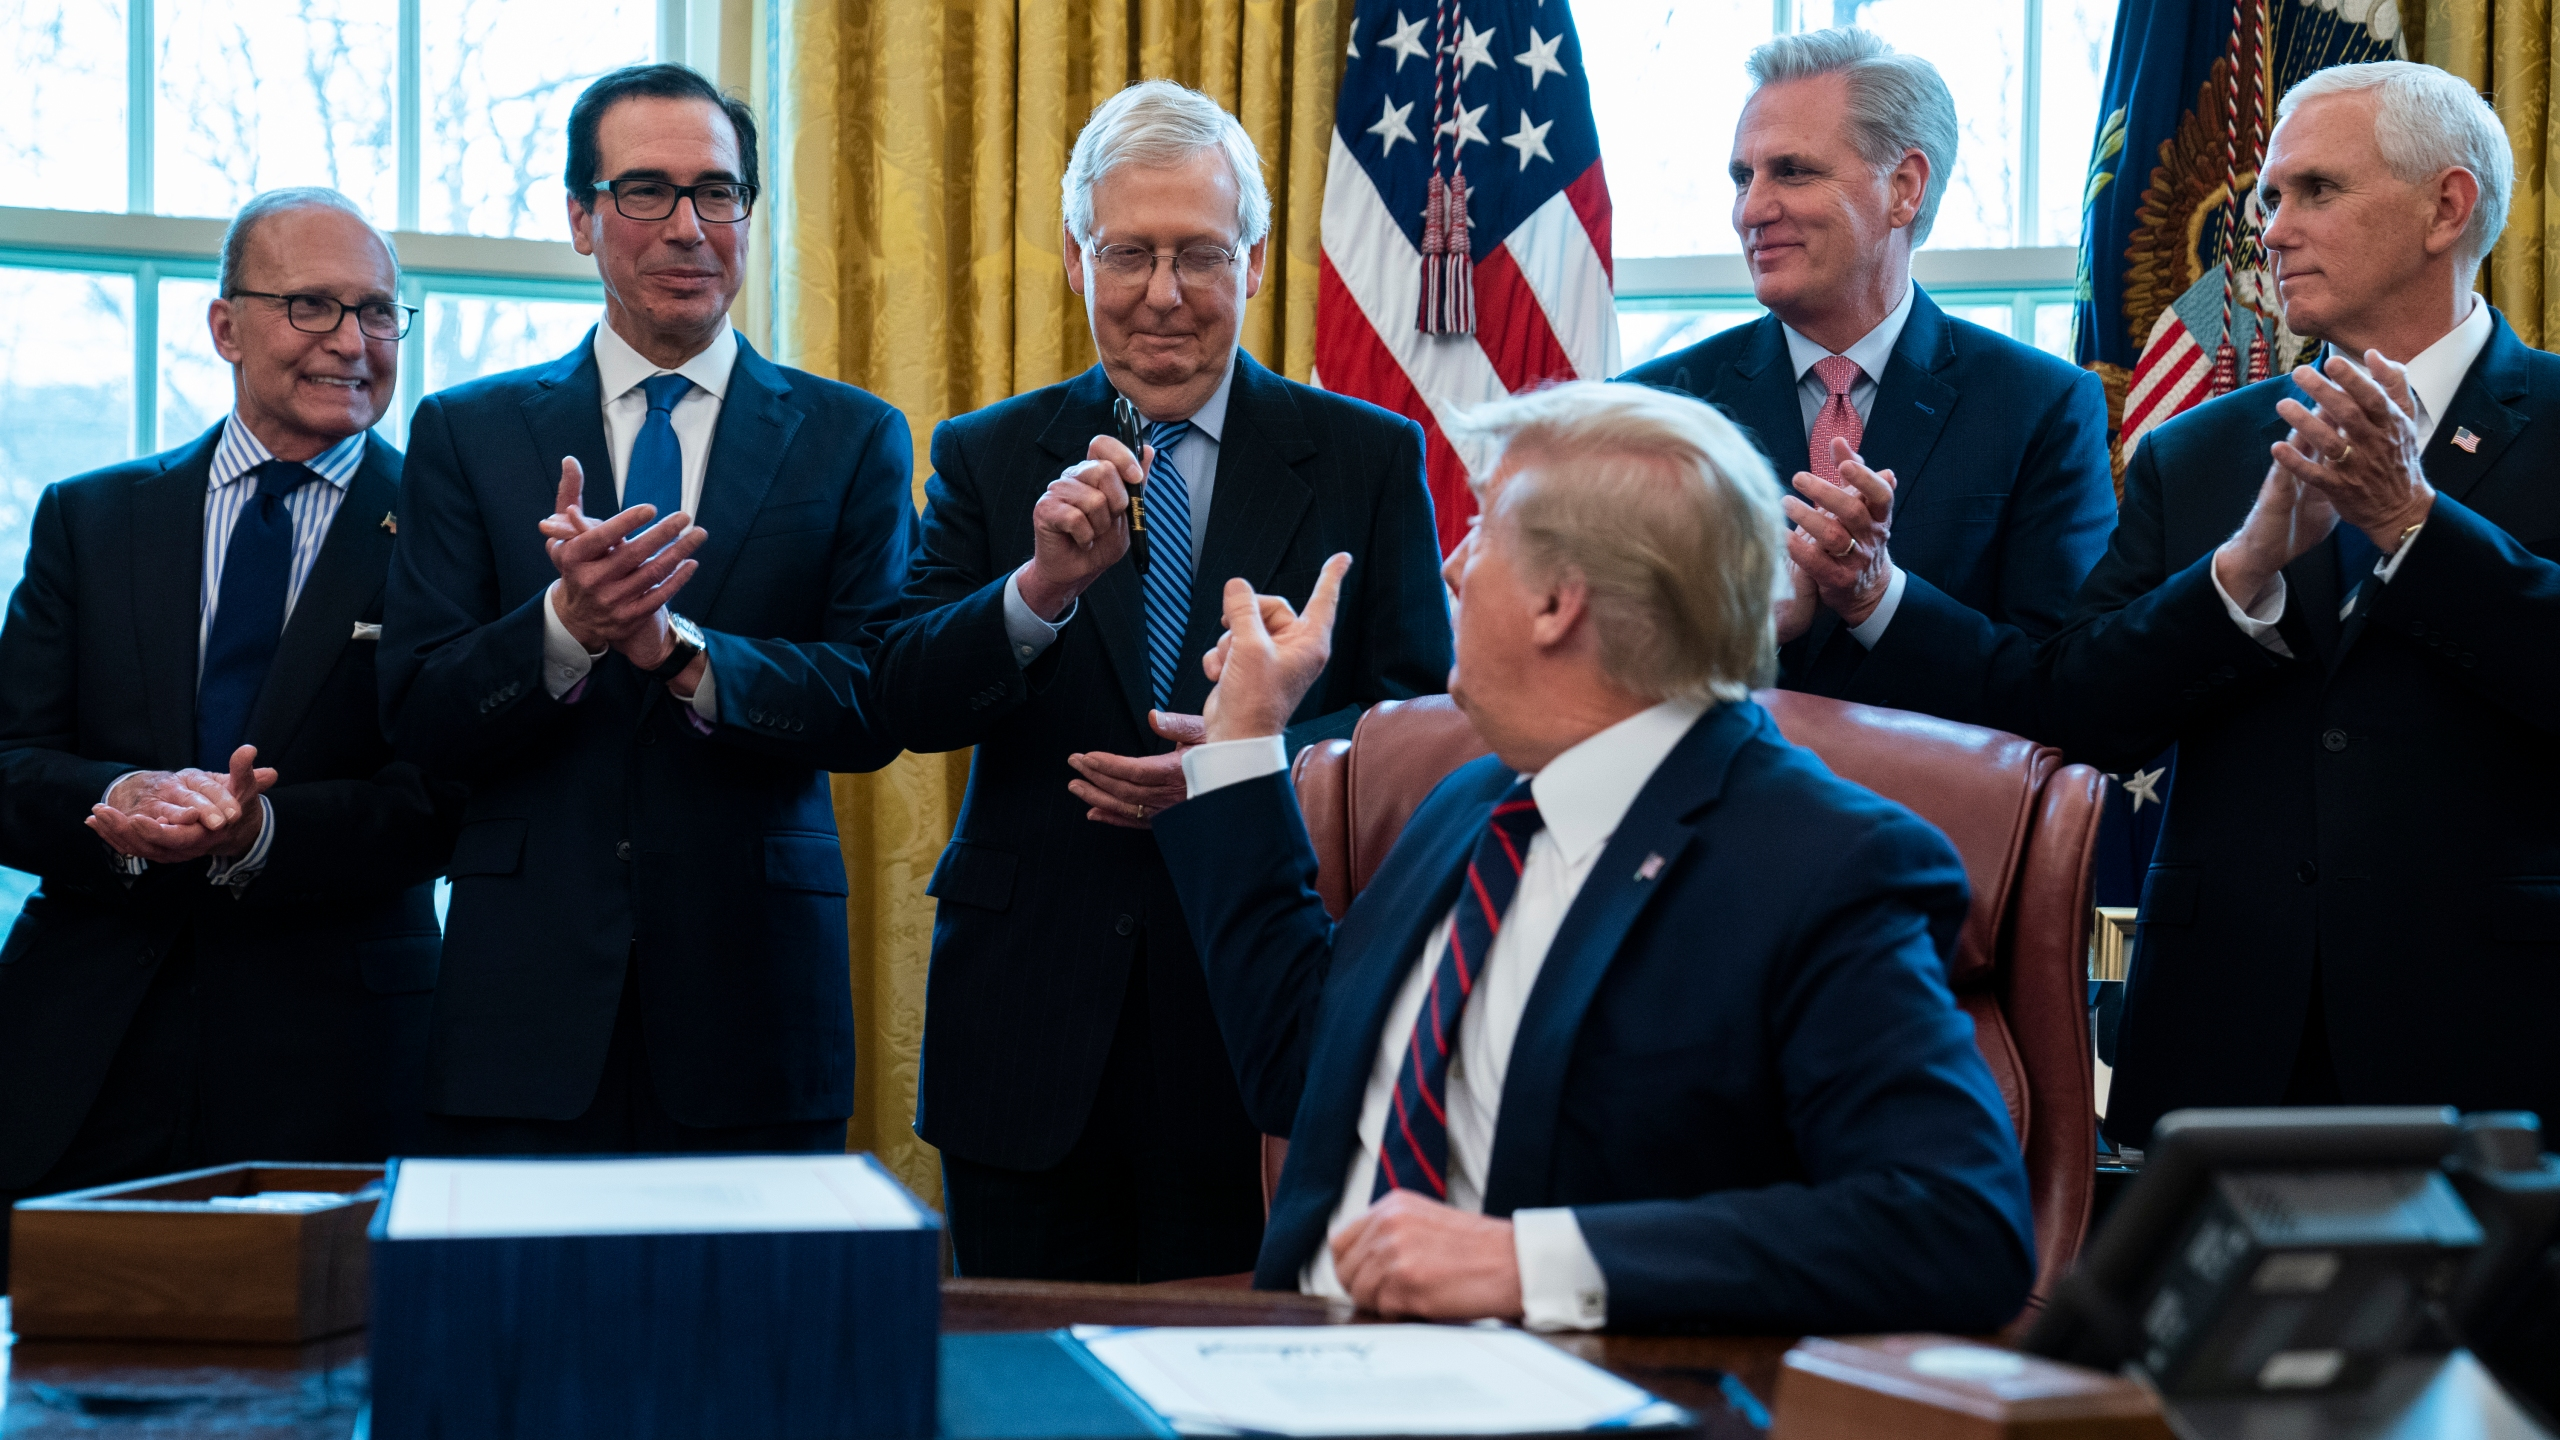 Donald Trump, Mitch McConnell, Larry Kudlow, Steven Mnuchin, Kevin McCarthy, Mike Pence